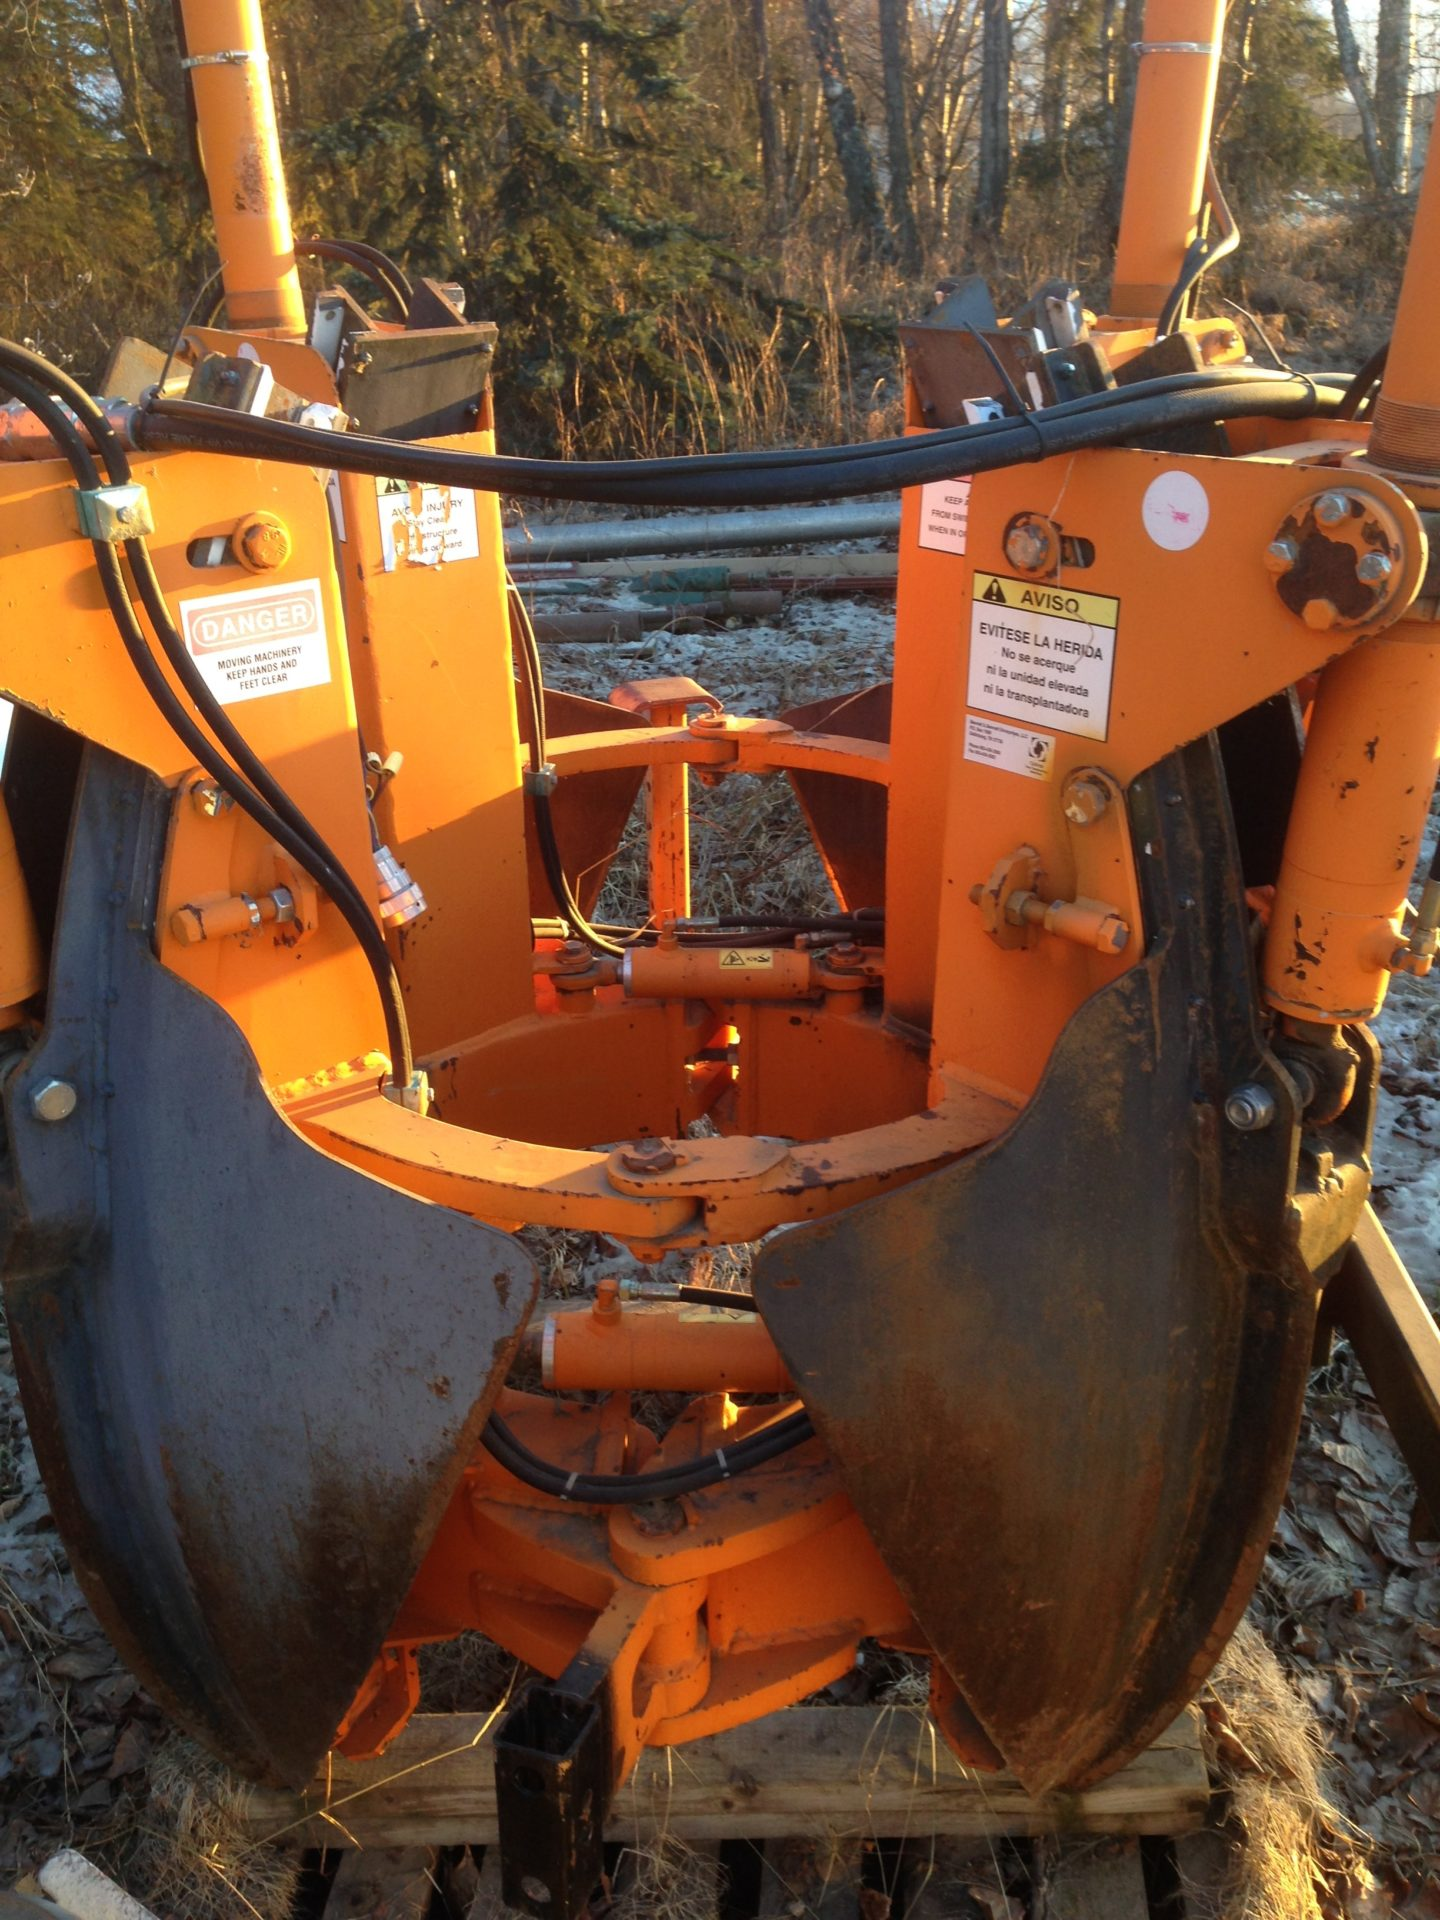 Optimal 1100 tree spade $14500 For skid steer or loader. Please call for more information. 745-0800